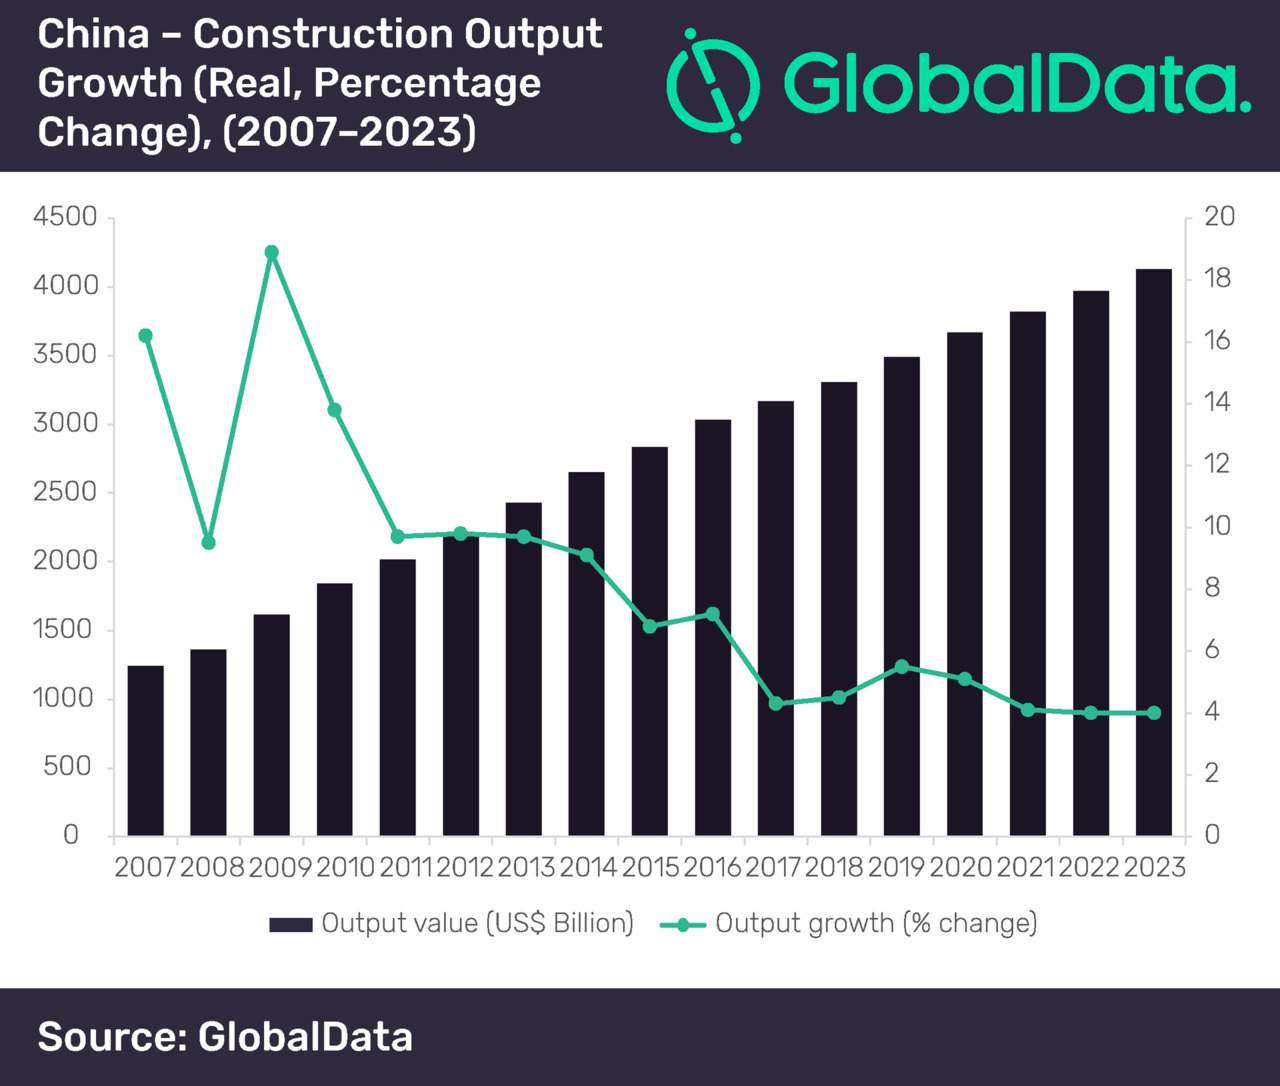 China Construction Industry Growth According to Global Data